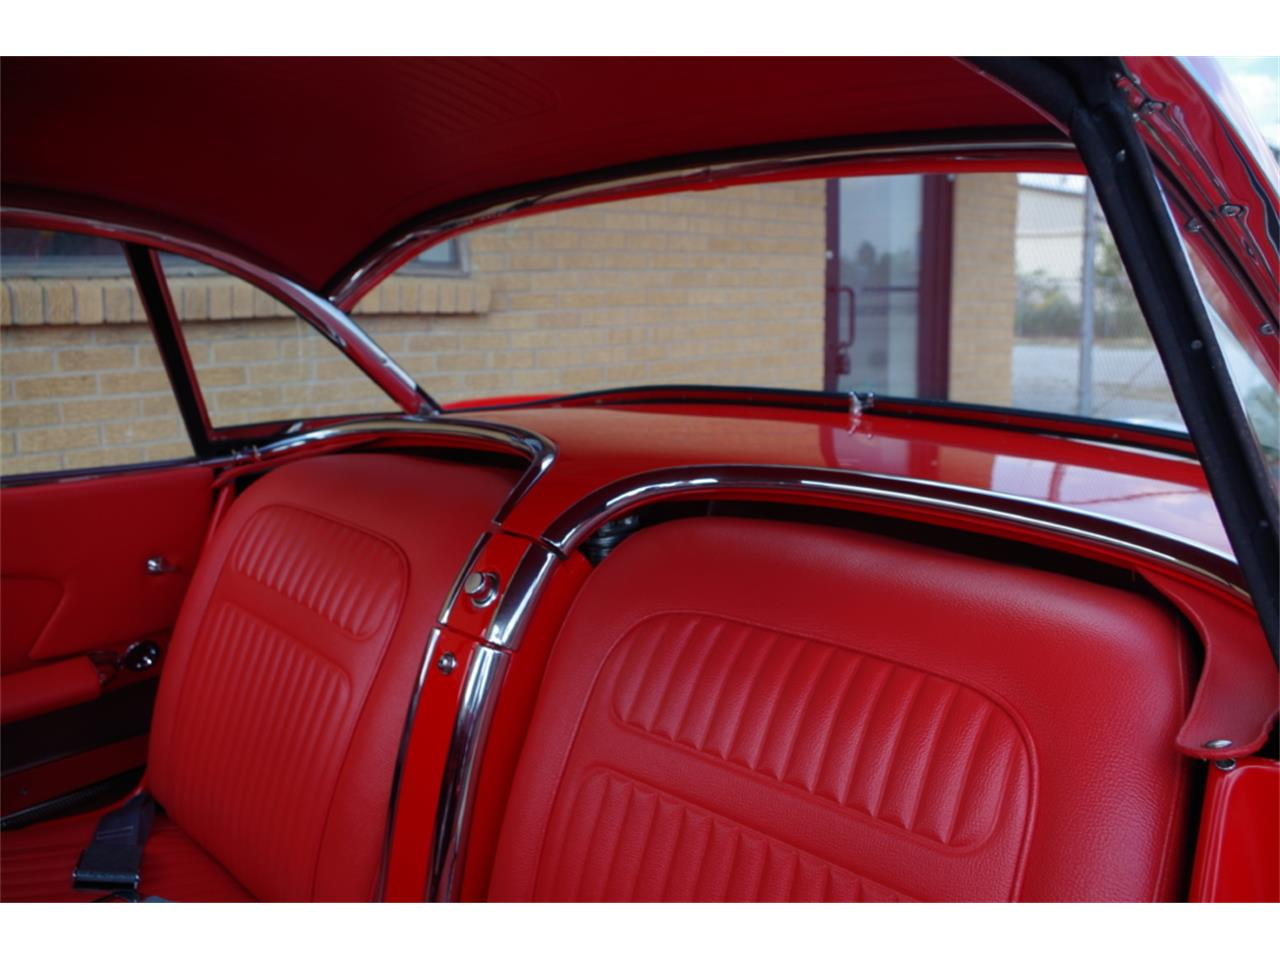 Large Picture of Classic '58 Corvette located in N. Kansas City Missouri - $139,900.00 Offered by Vintage Vettes, LLC - R23F